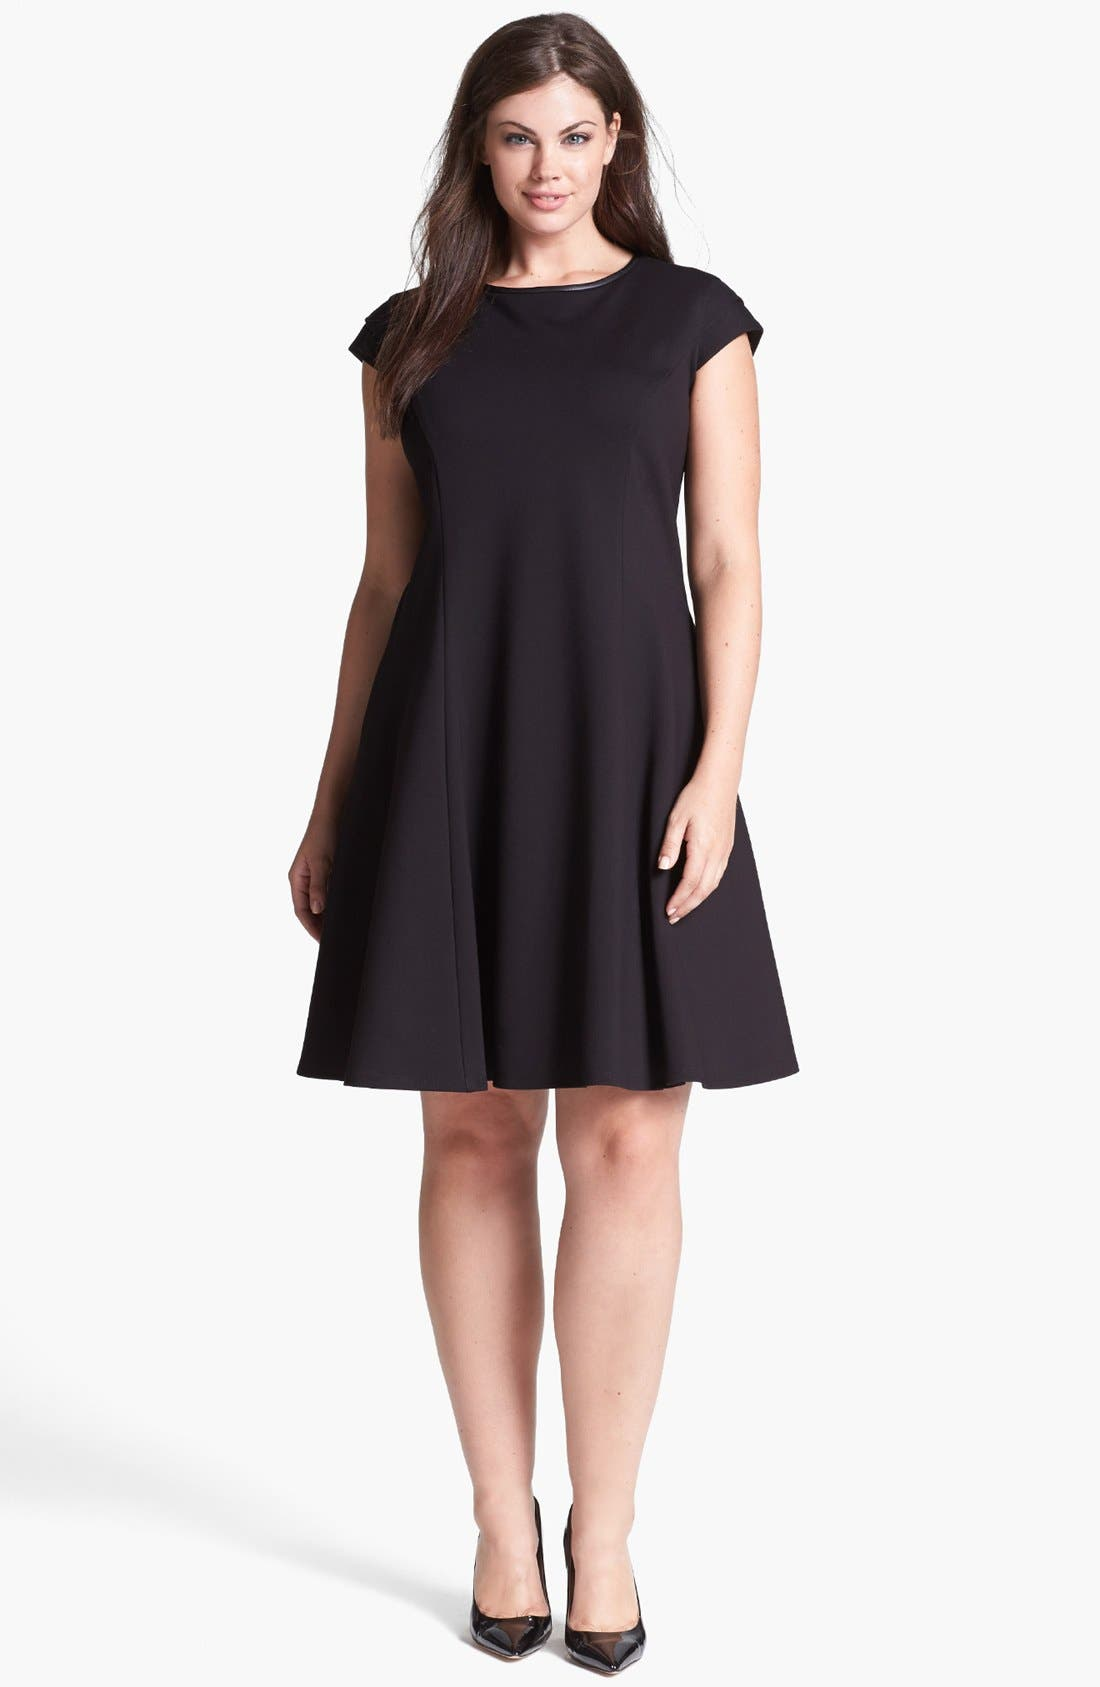 Alternate Image 1 Selected - ABS by Allen Schwartz Ponte Knit Fit & Flare Dress (Plus Size)